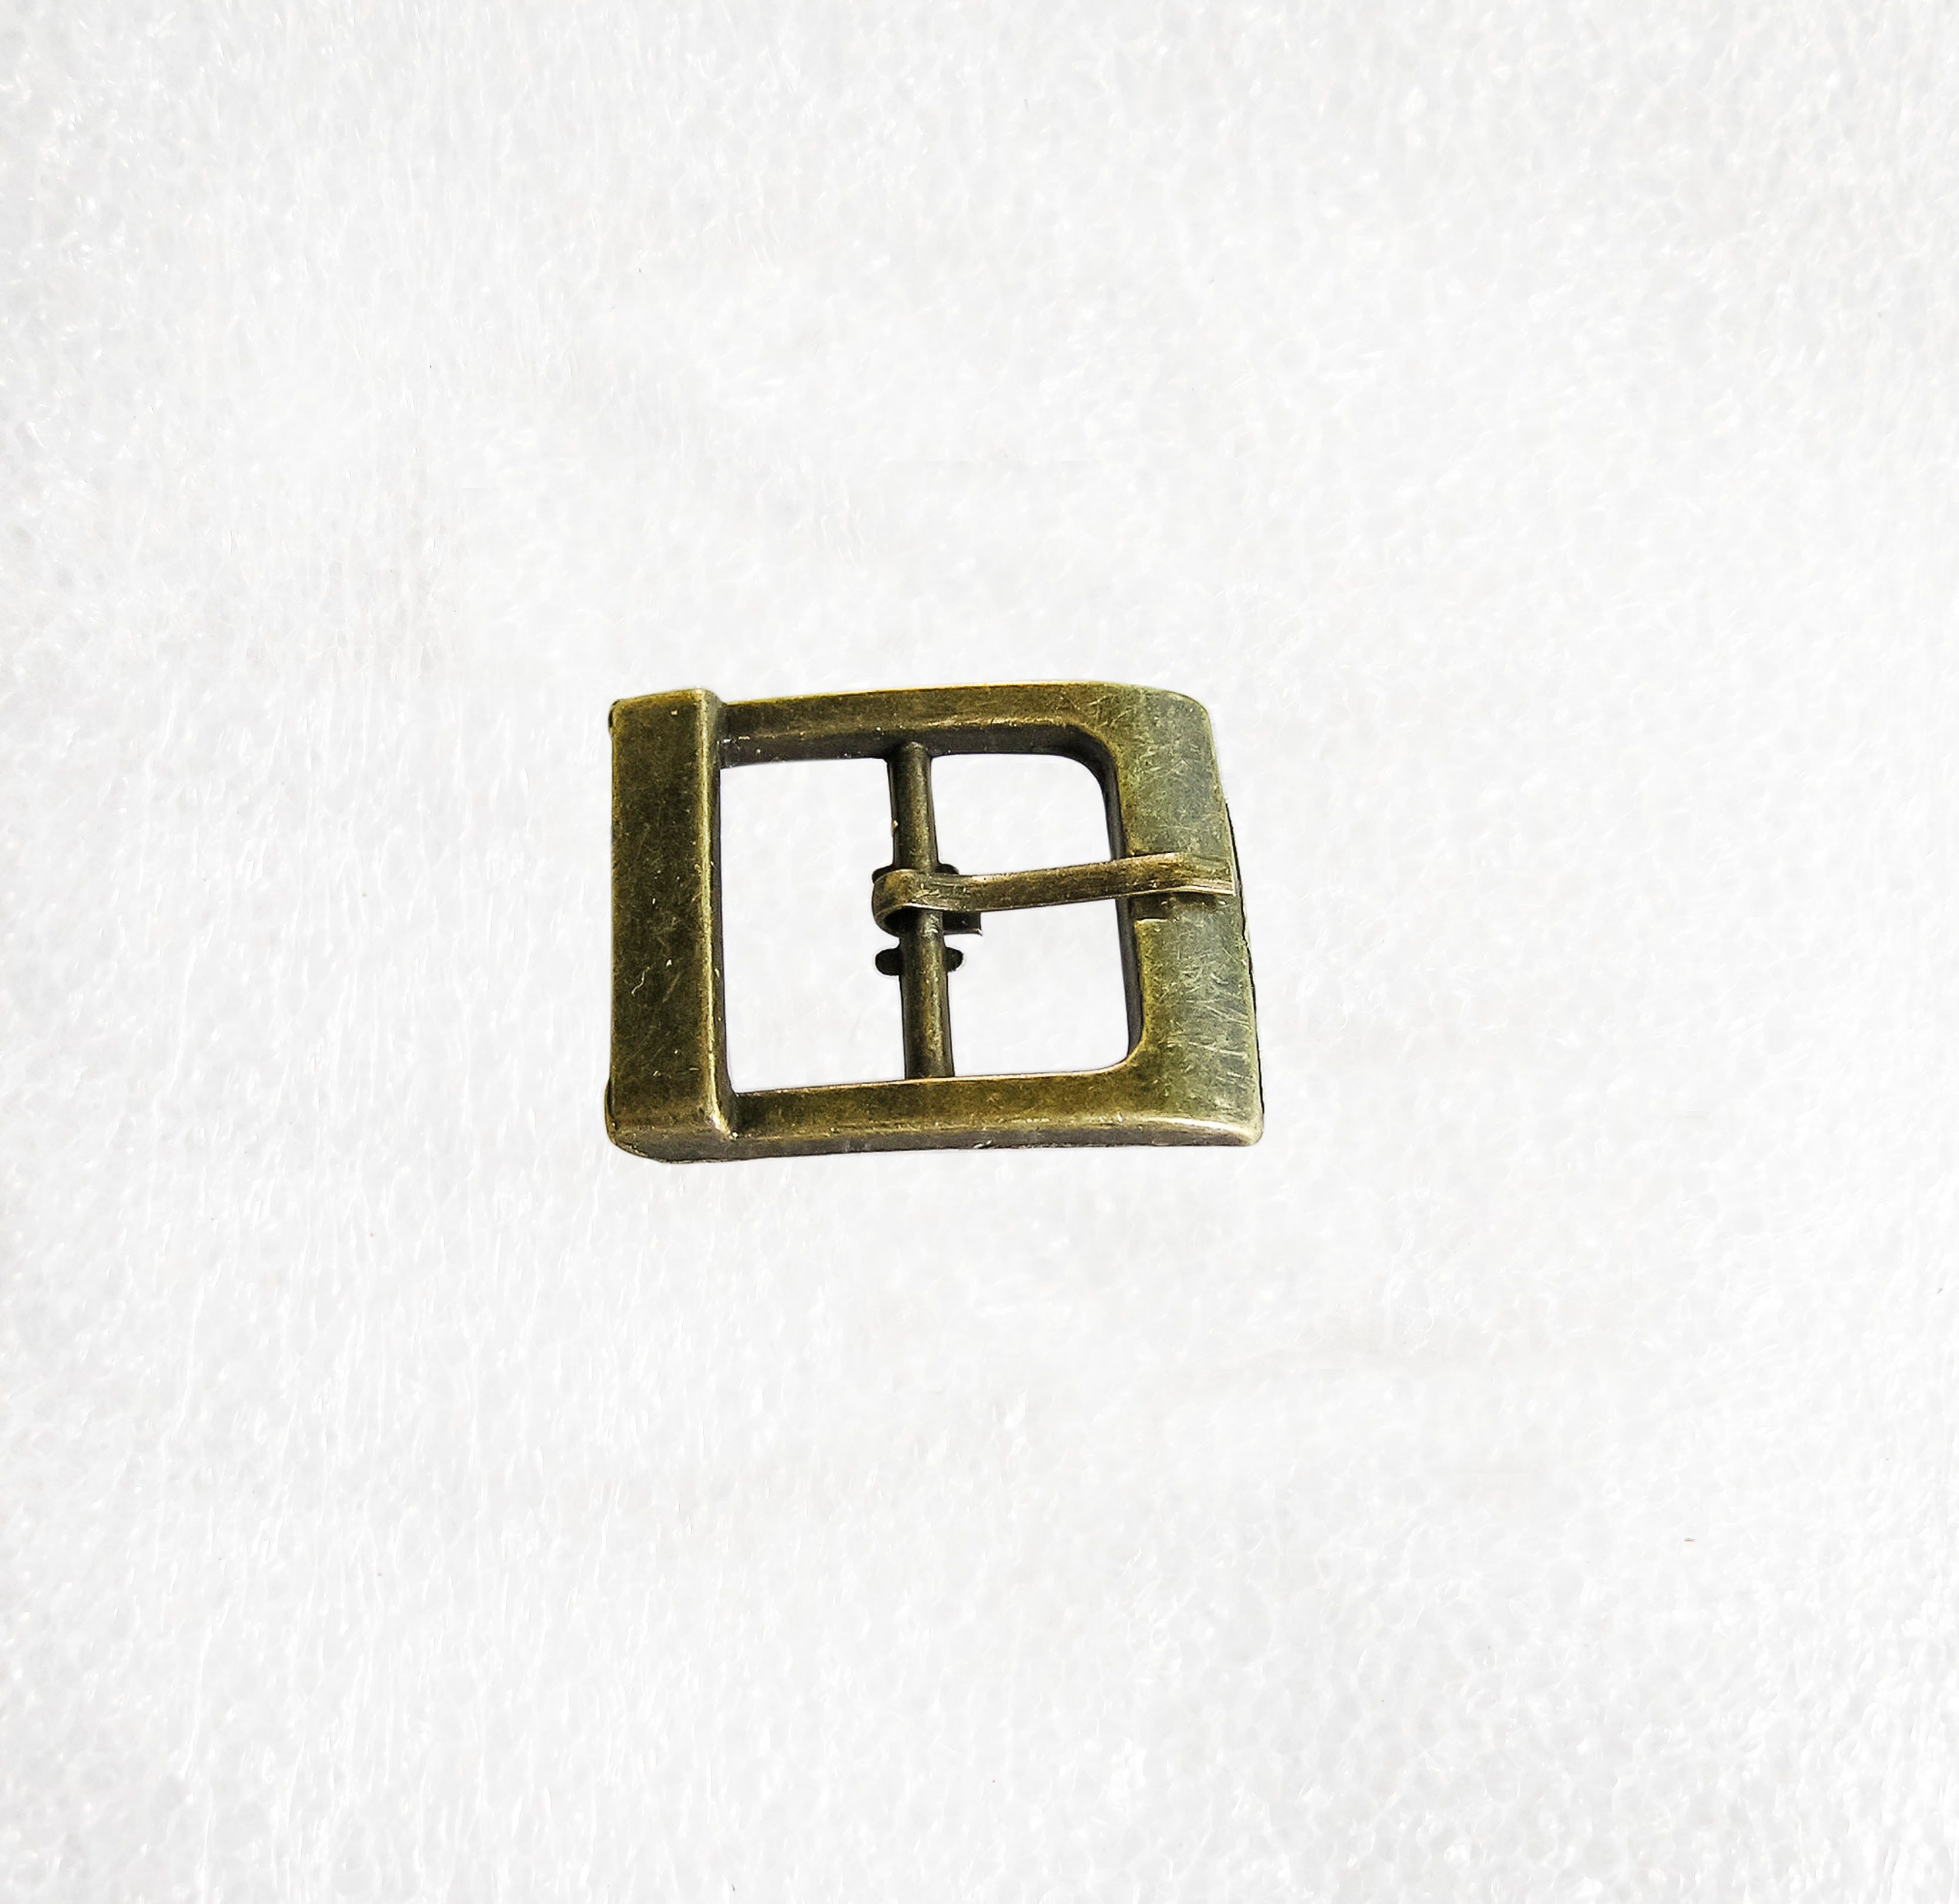 Brass Horse Shoe Buckle //Clasp 20mm